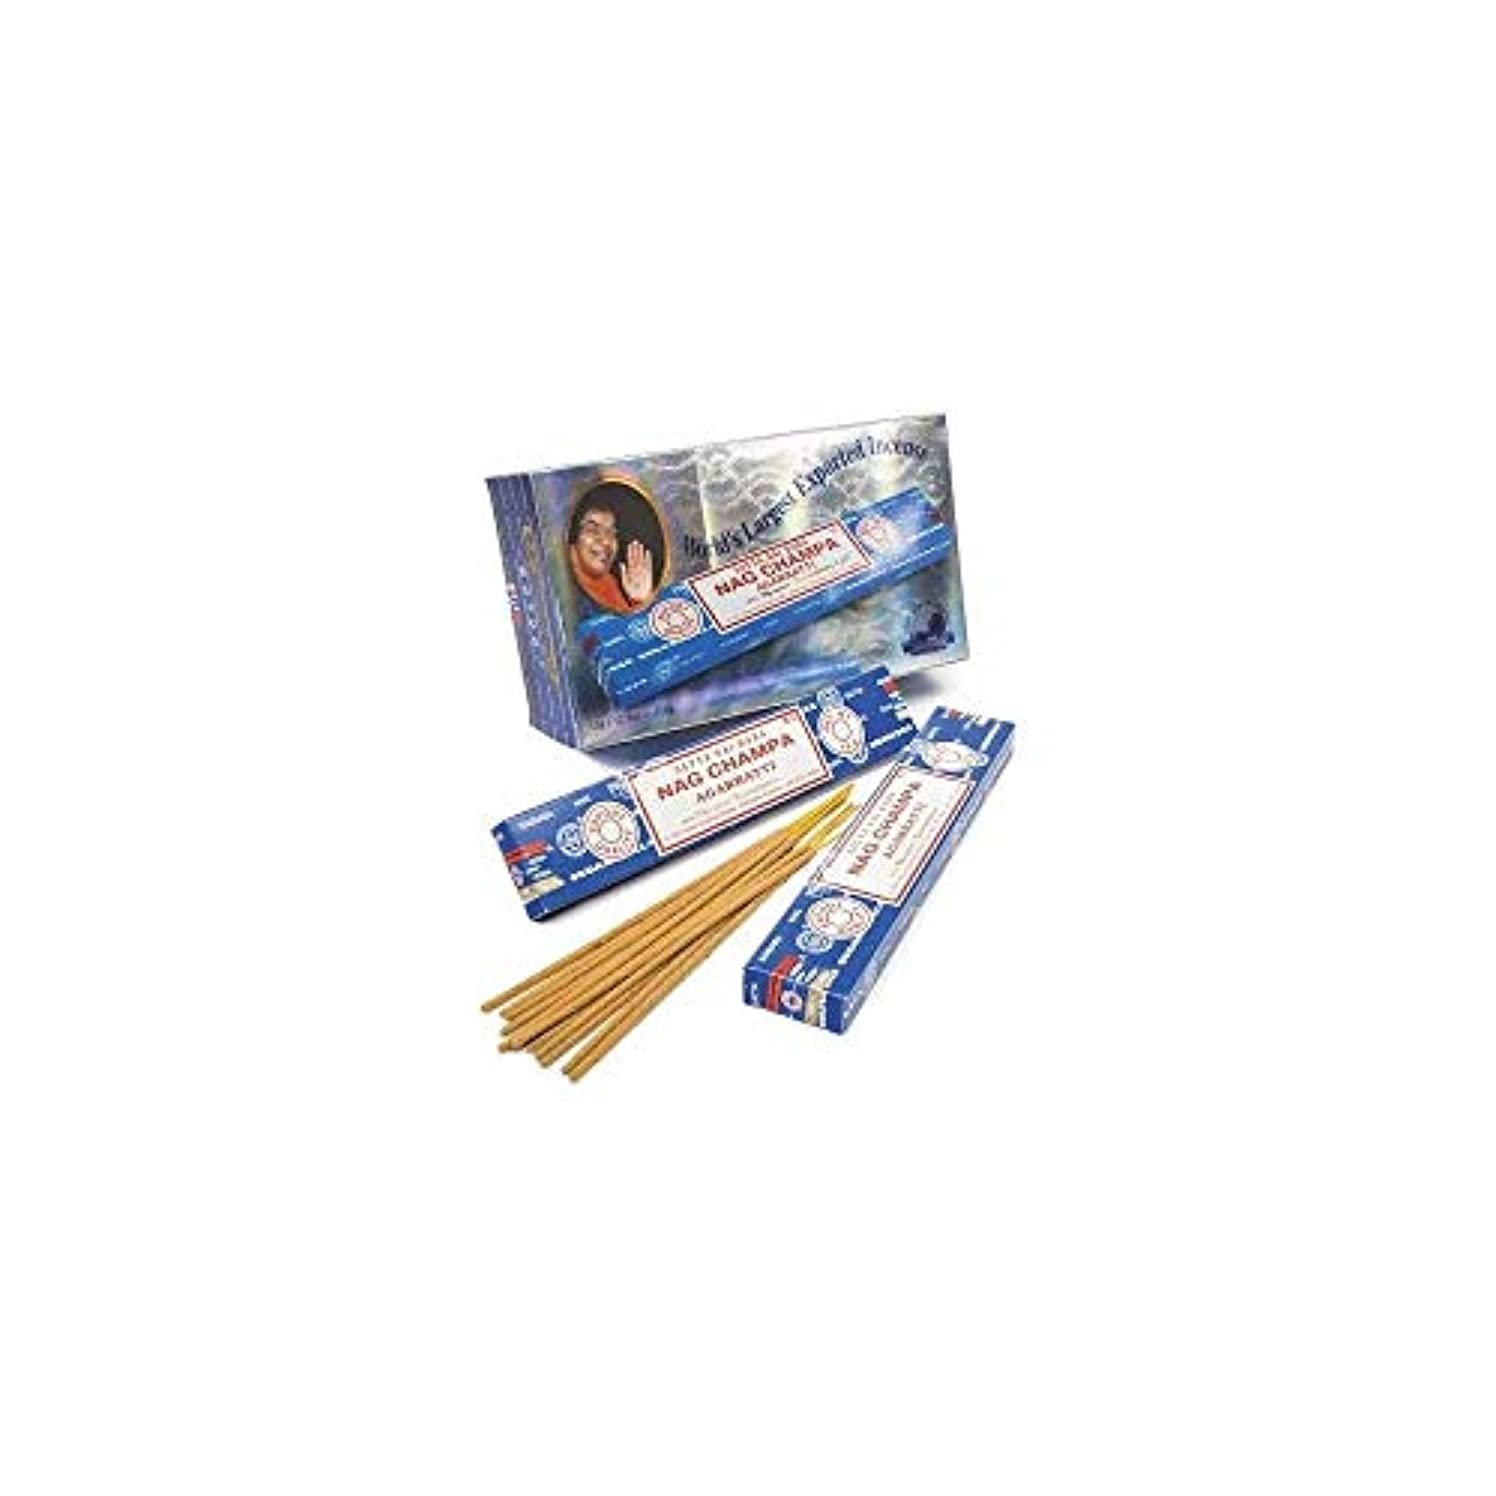 石鹸問い合わせ感嘆Box Of 12 Packs Of 15g Nag Champa Incense Sticks By Satya